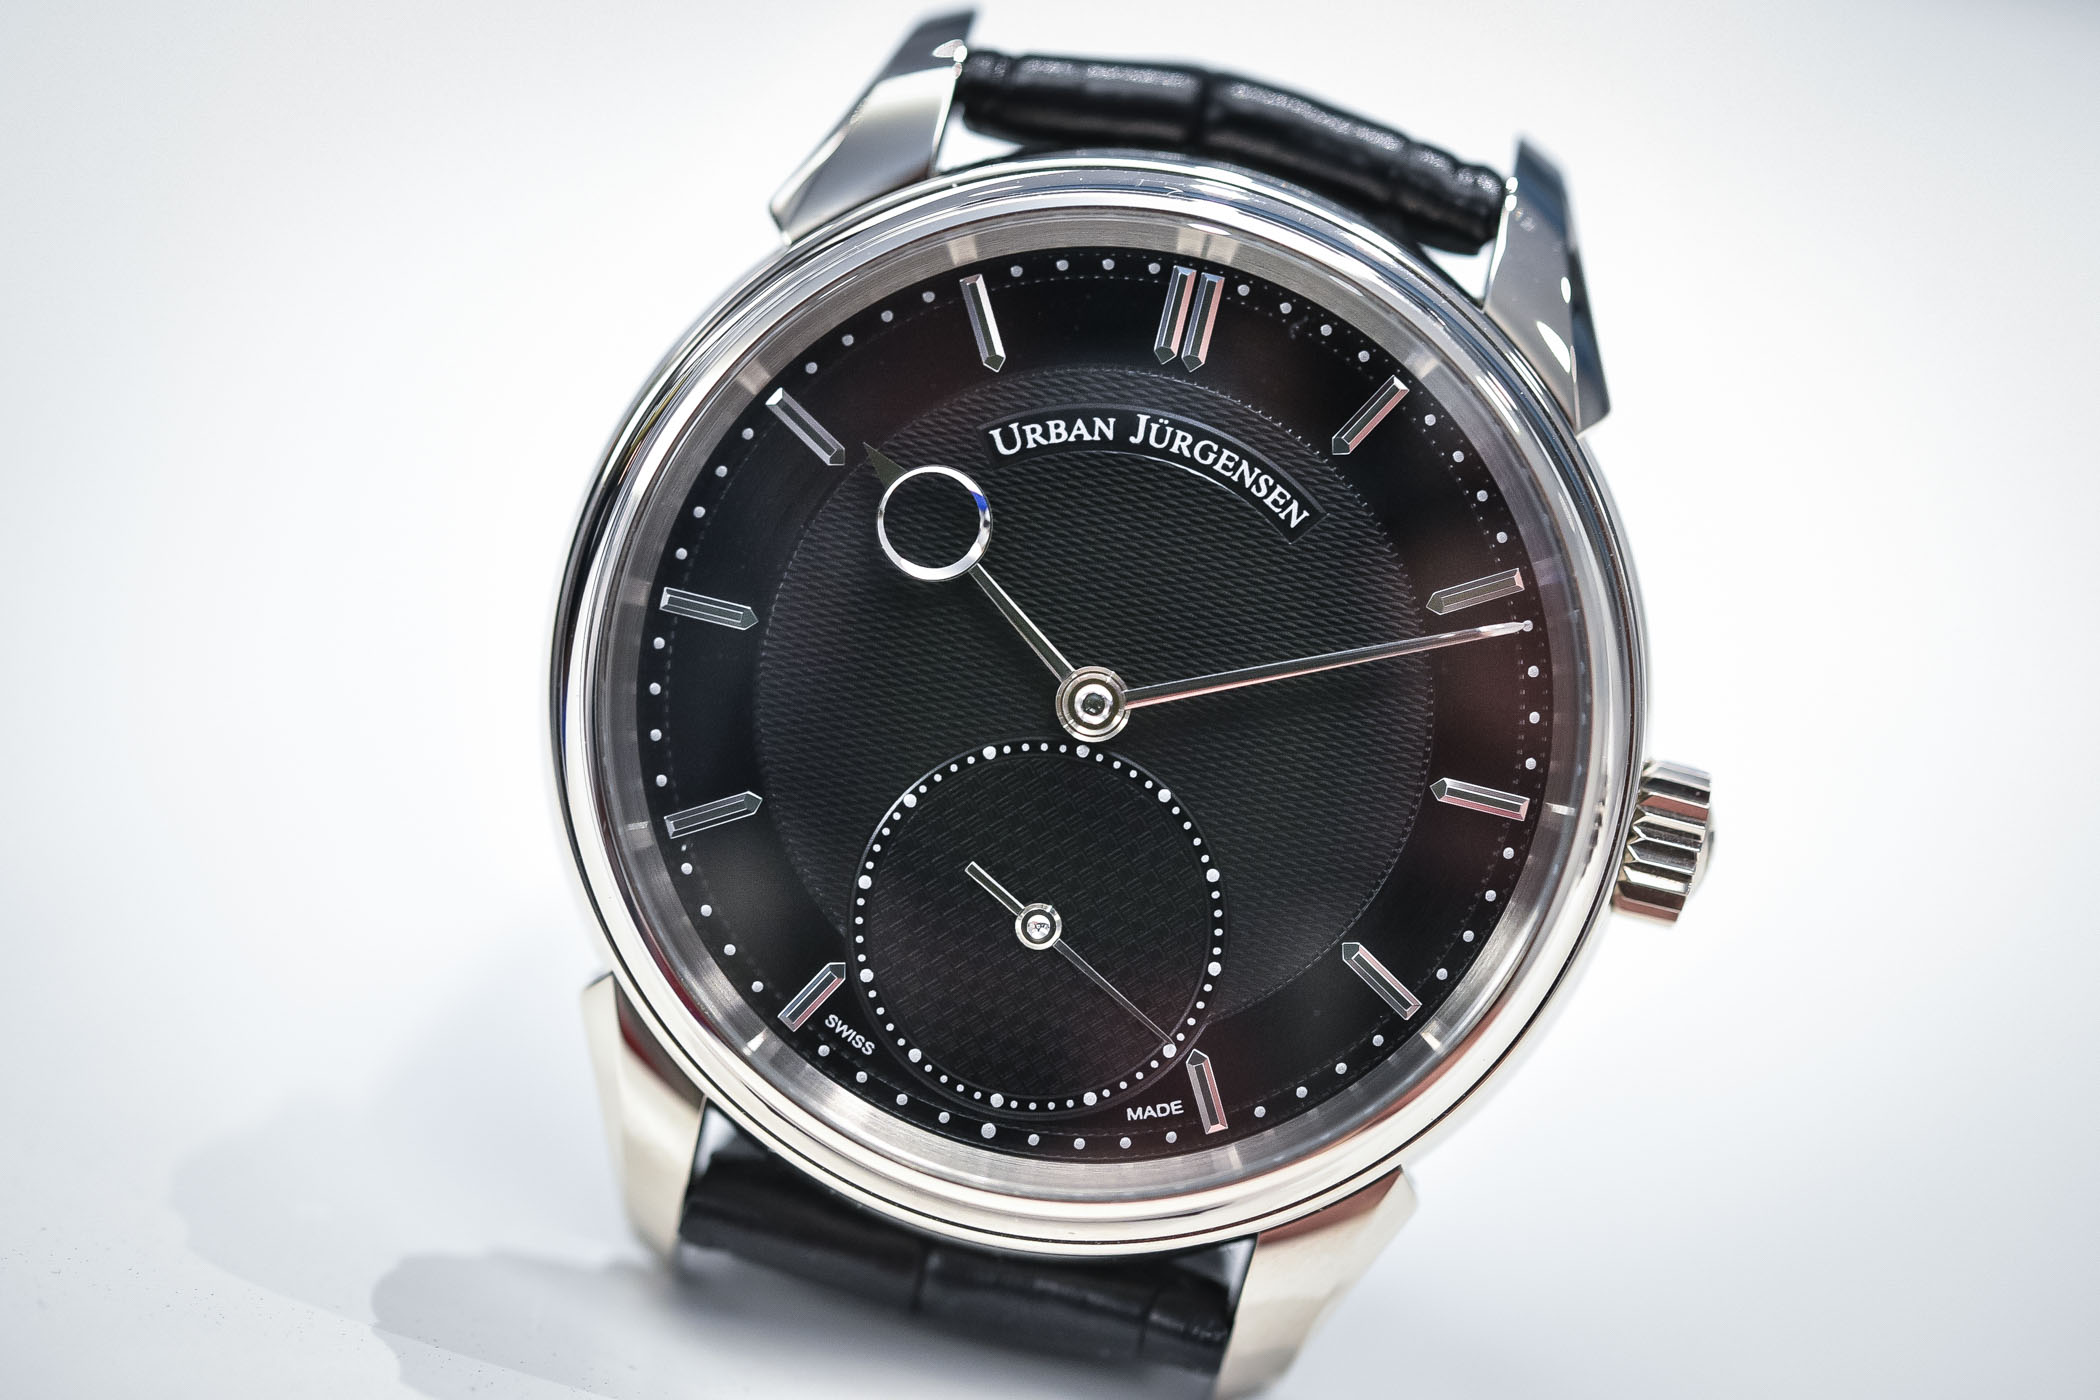 Urban Jurgensen 2140 White Gold Black Guilloche Dial - Baselworld 2018